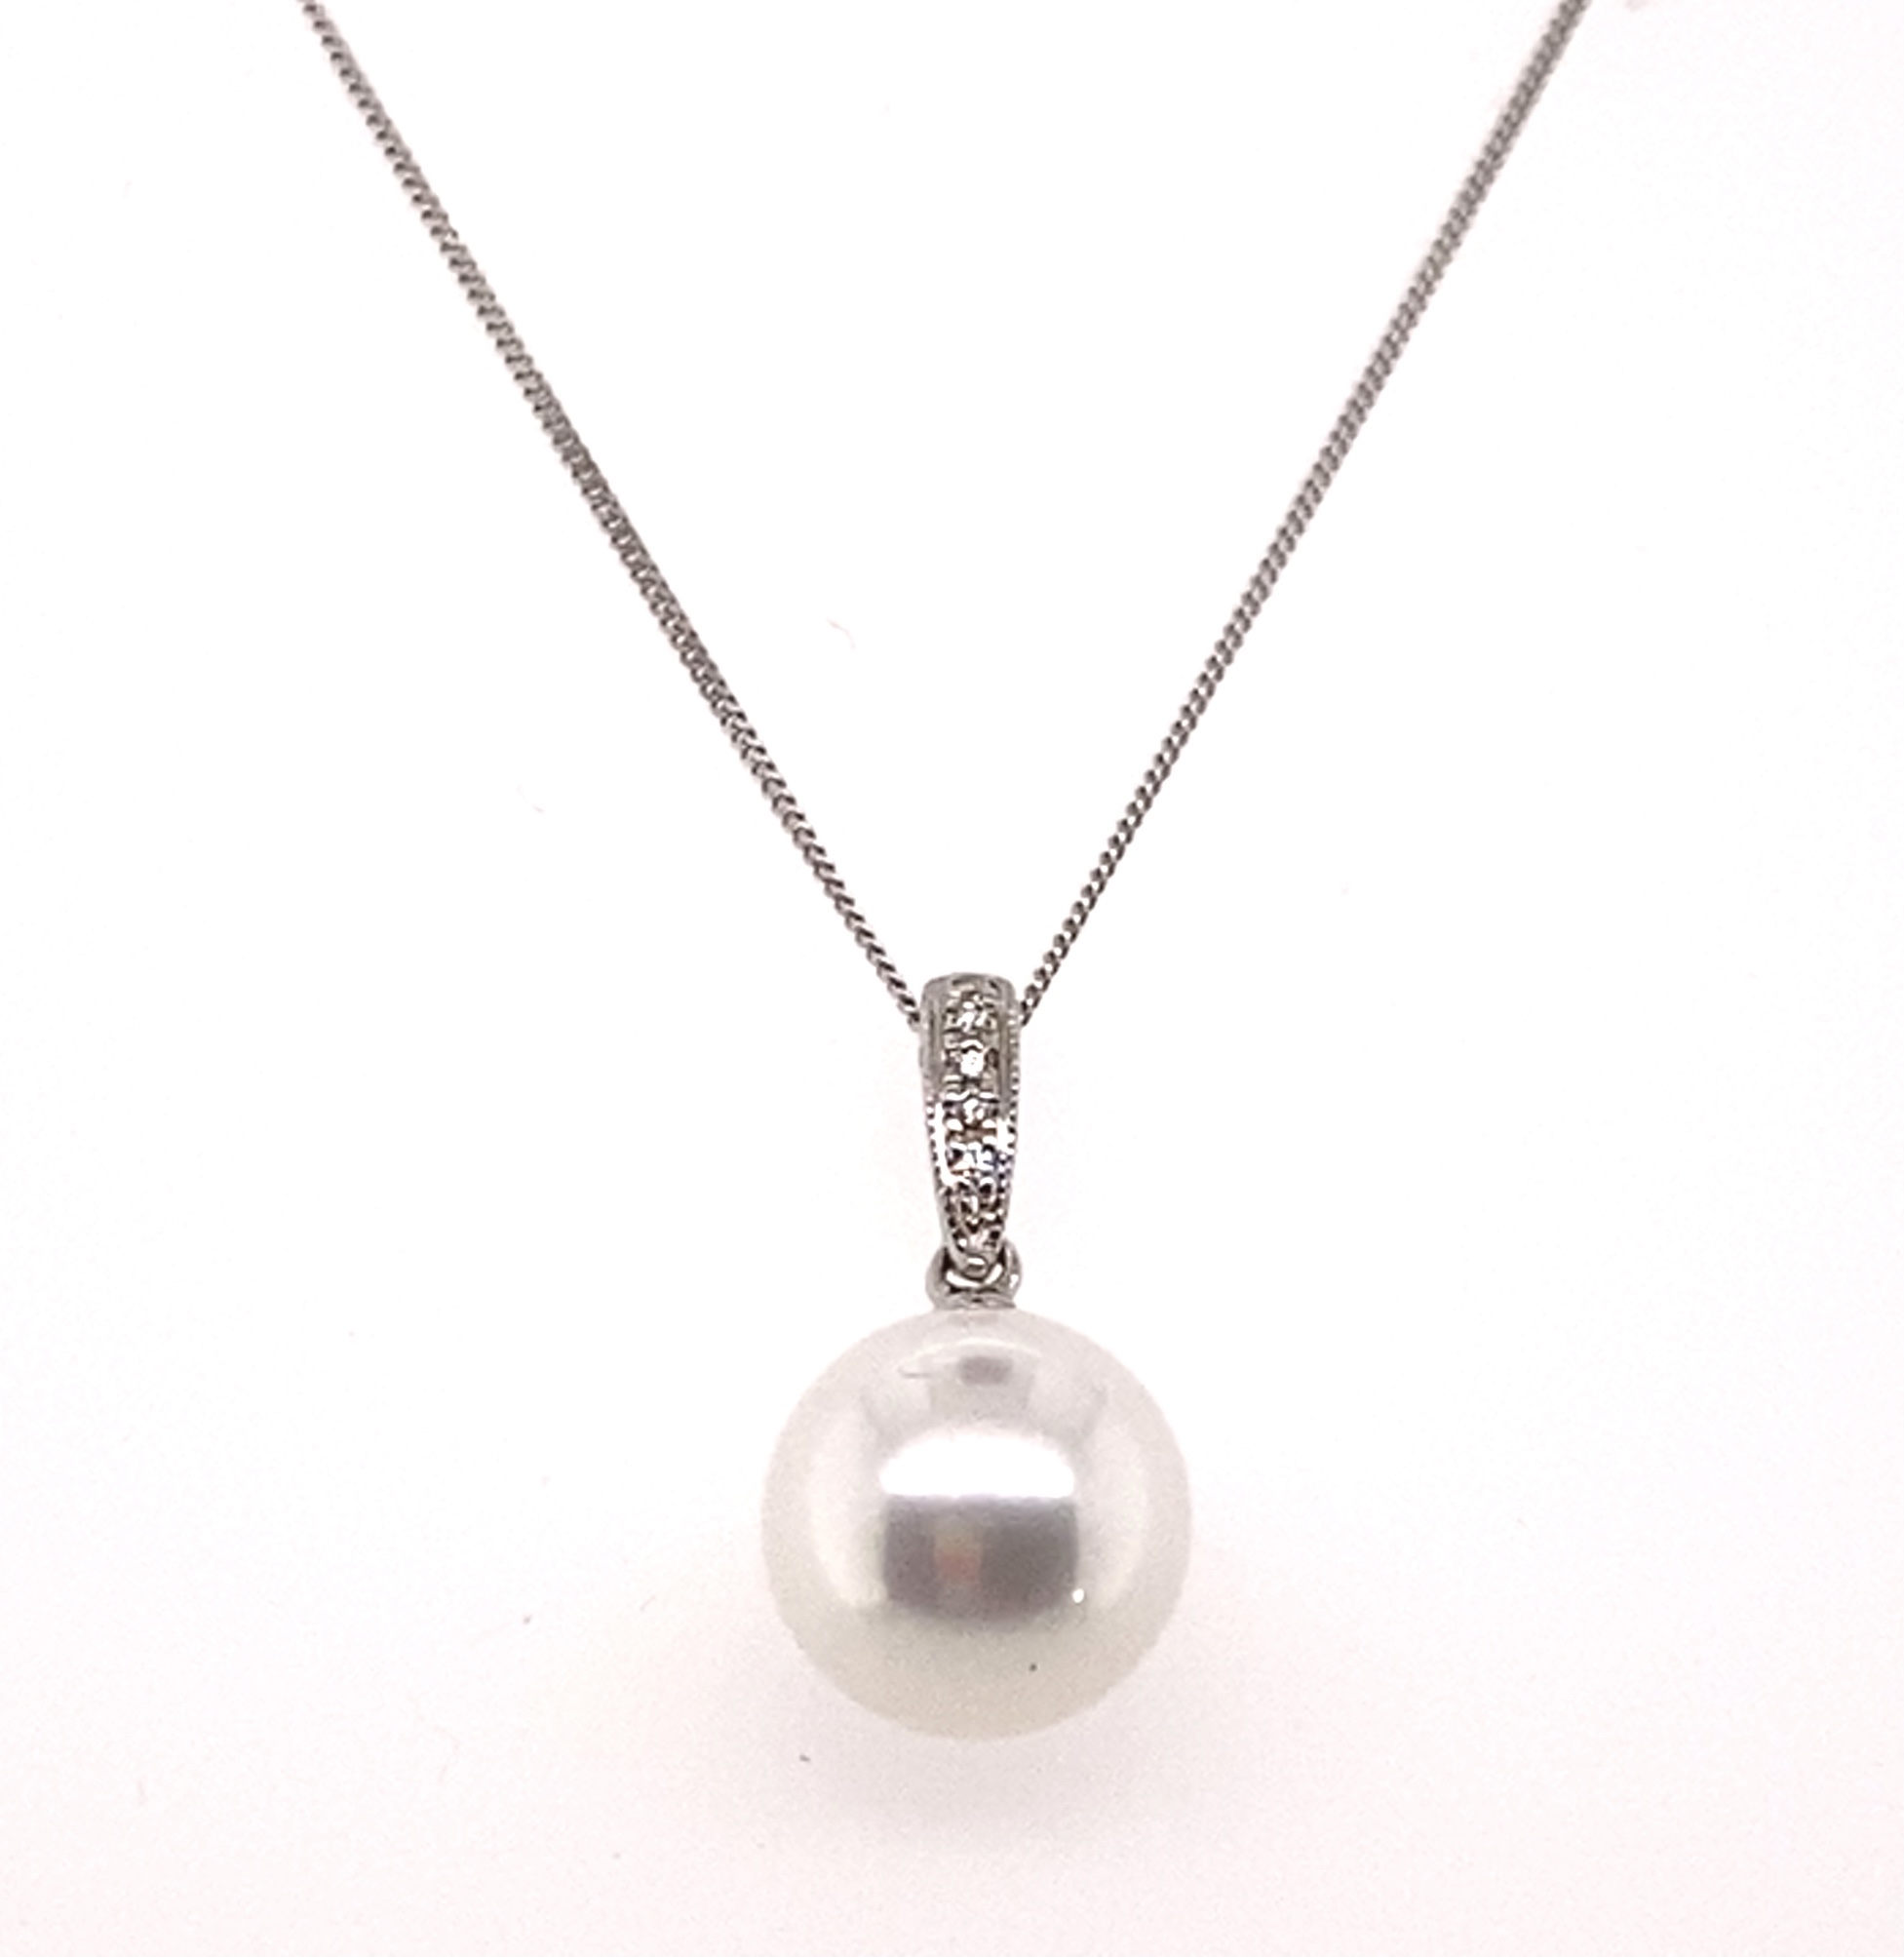 A 9 Carat White Gold Cultured Pearl & Diamond Pendant